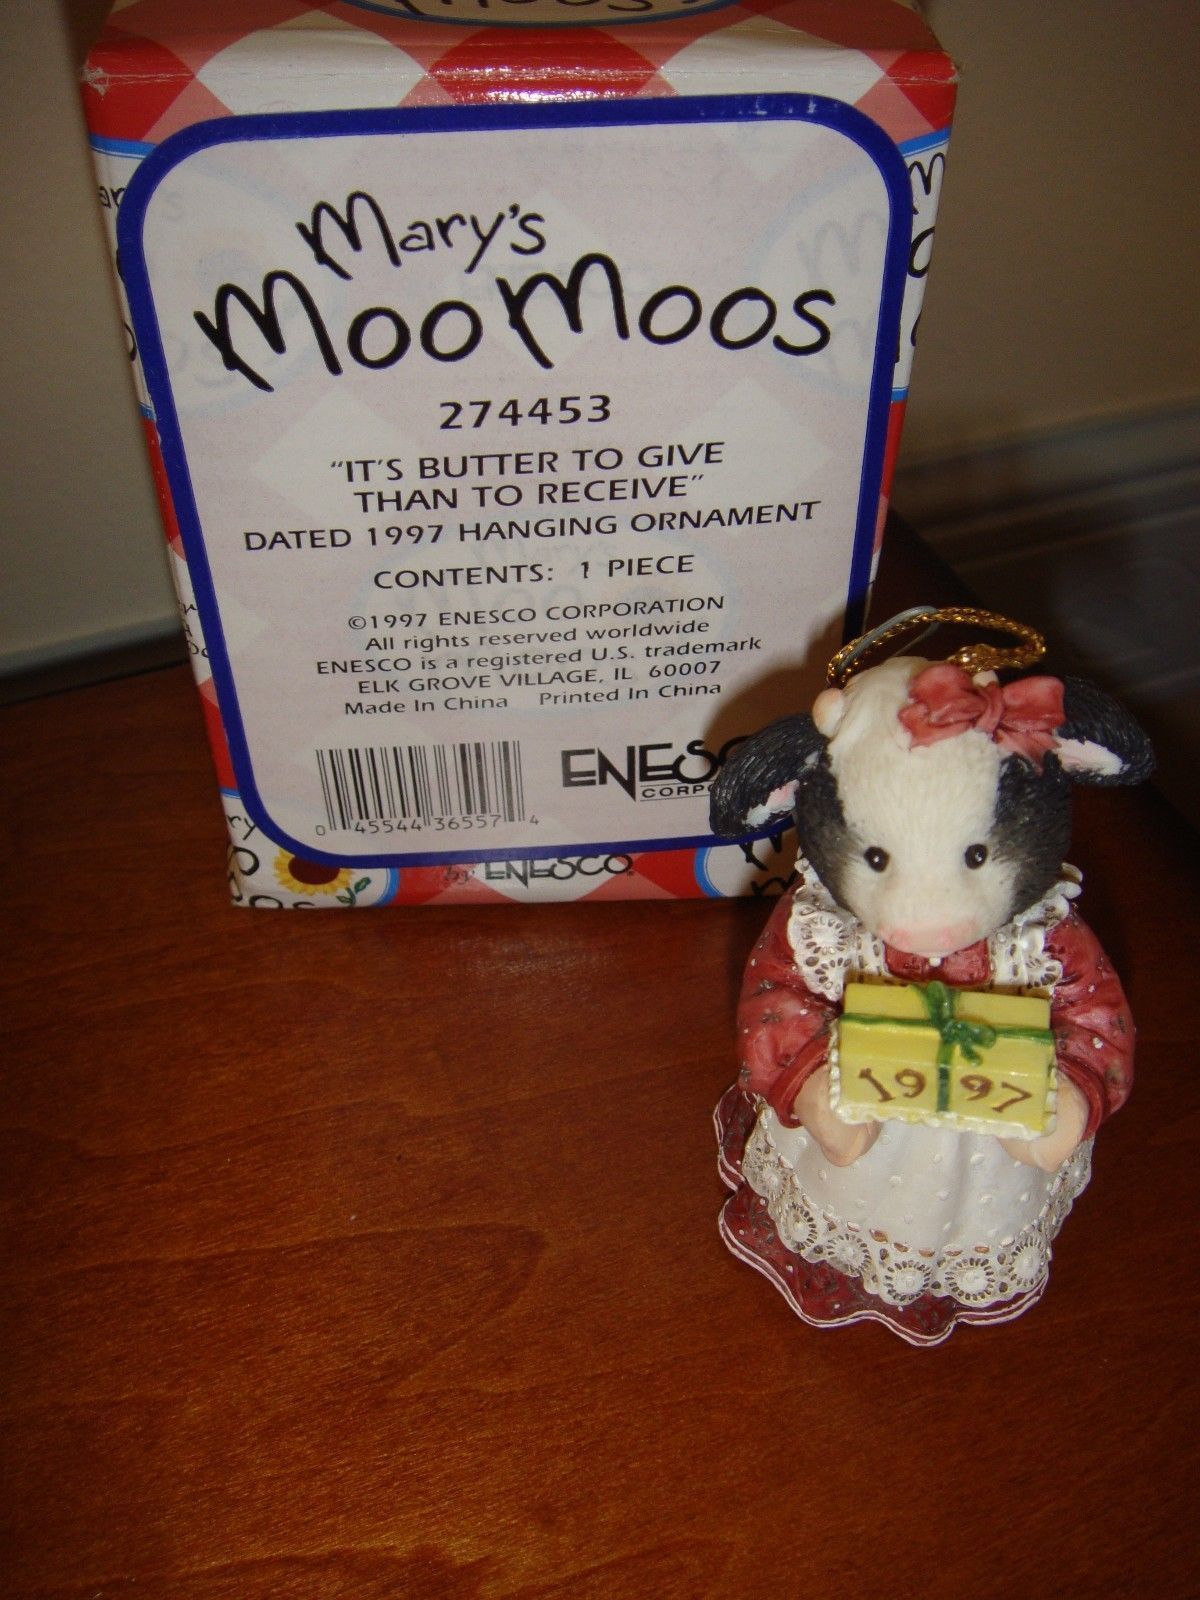 Mary's Moo Moos It's Butter To Give Than To Receive Dated 1997 Ornament, 274453